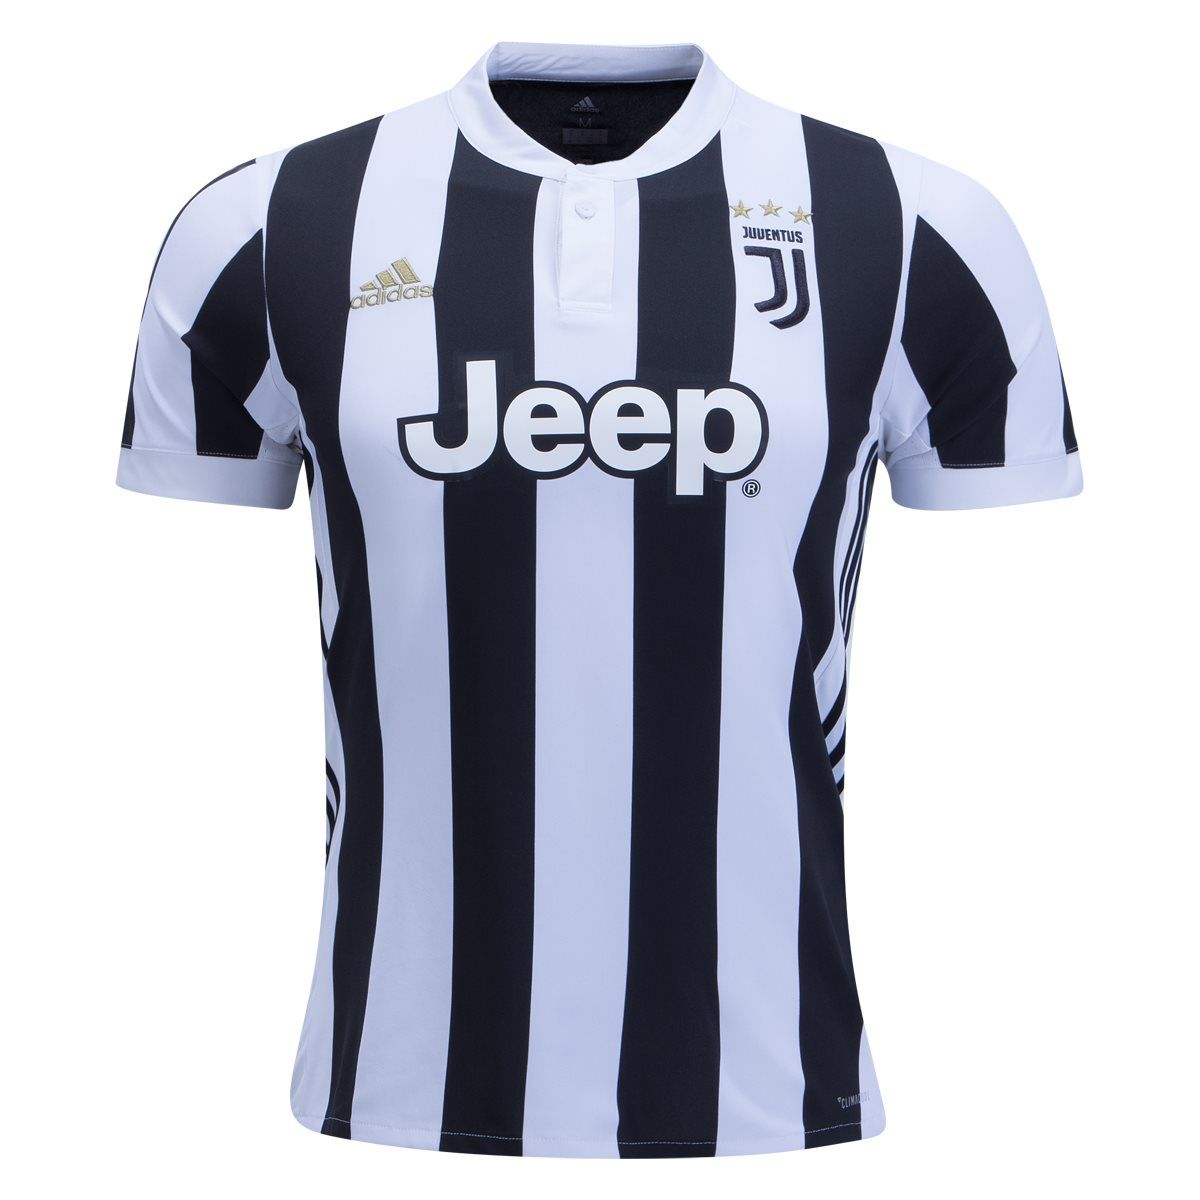 4222adeb7e3 adidas Juventus Home Jersey 17/18 | Launches: Kits and Jerseys ...